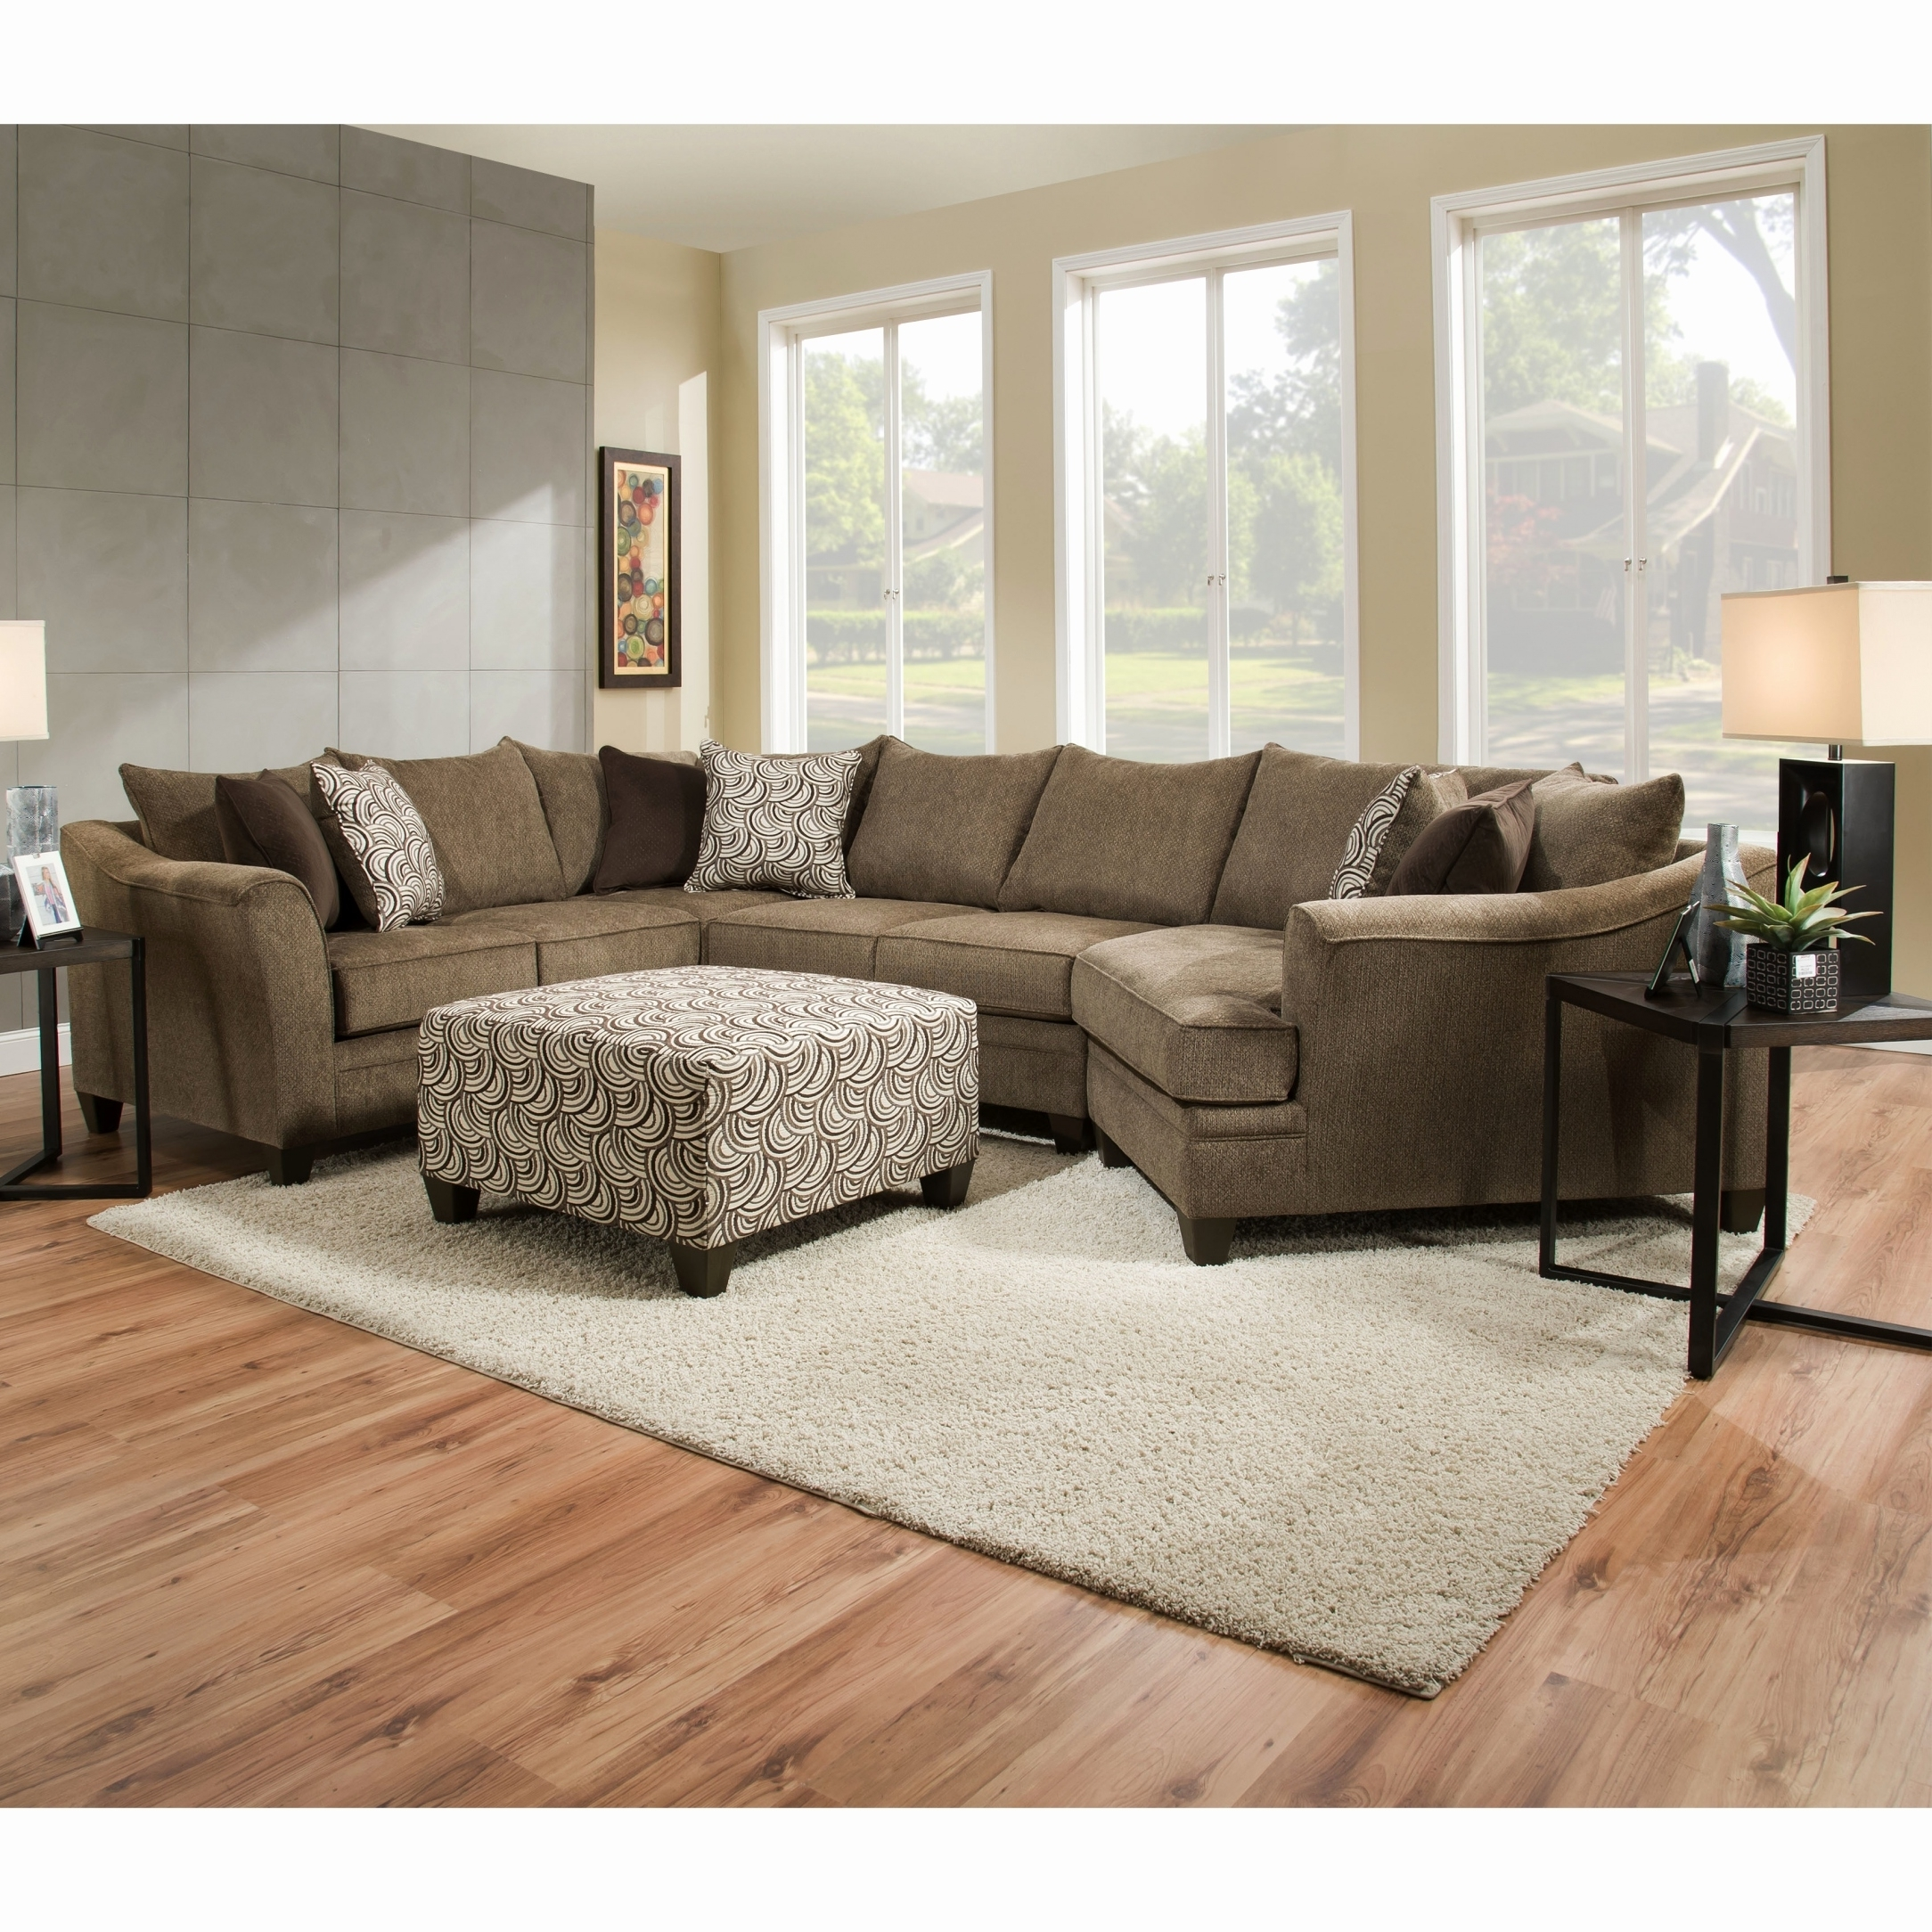 Joss And Main Sectional Sofas Inside 2018 Sectional Couch Cheap Darling Sectional Sofa Reviews Teri U Joss (View 9 of 15)